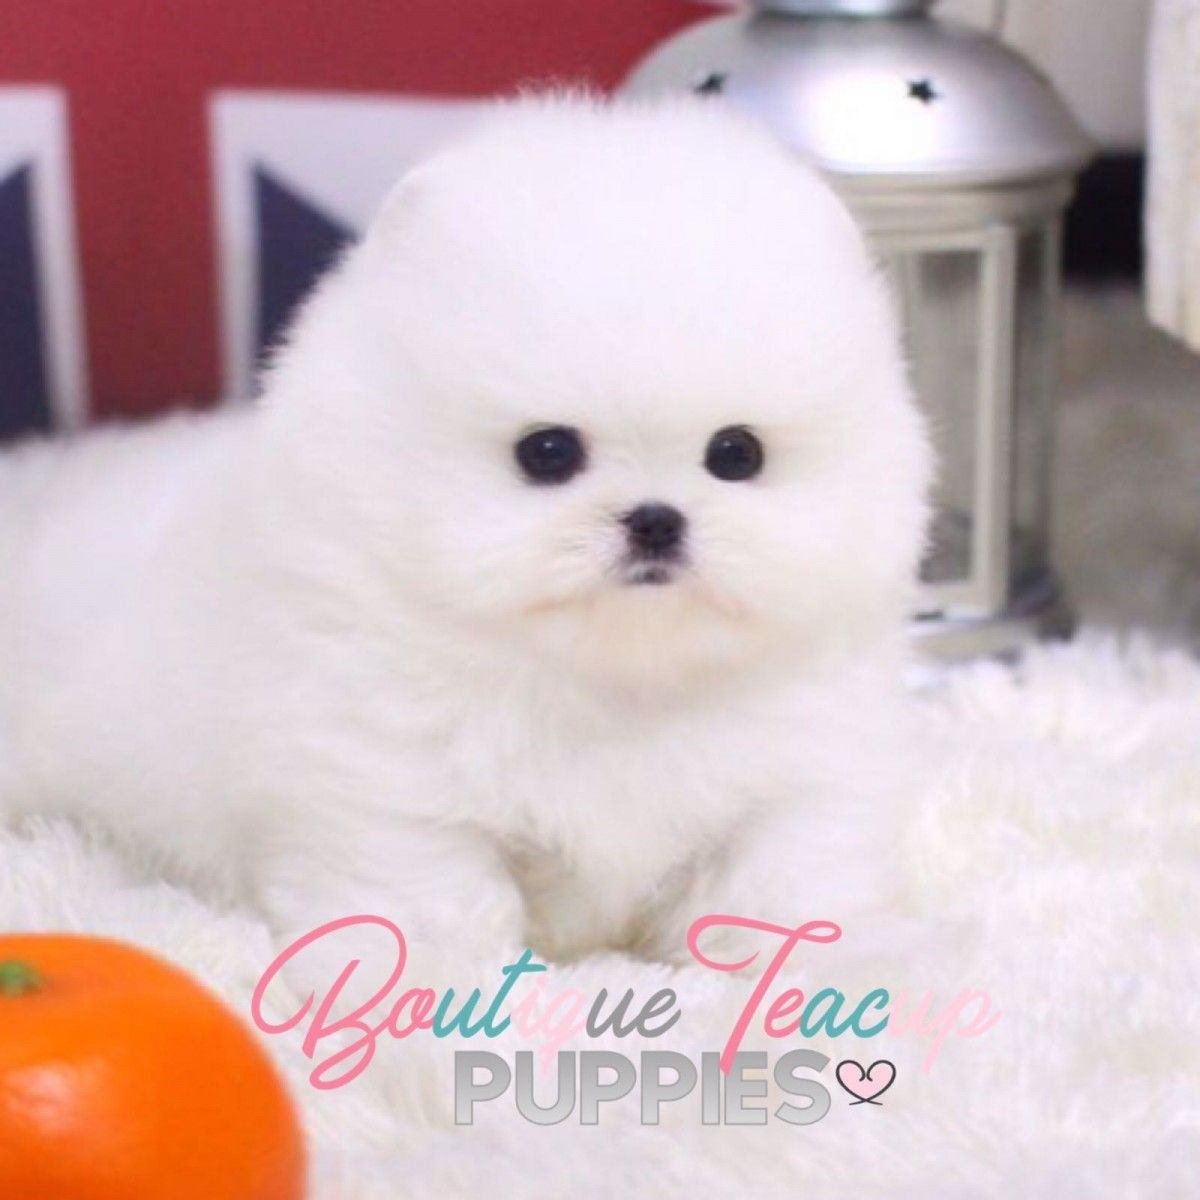 Micro Teacup Pomeranian Puppies For Sale In Texas White Miniature Toy Pom Puppies Pomeranian Puppy Teacup Pomeranian Puppy For Sale White Pomeranian Puppies